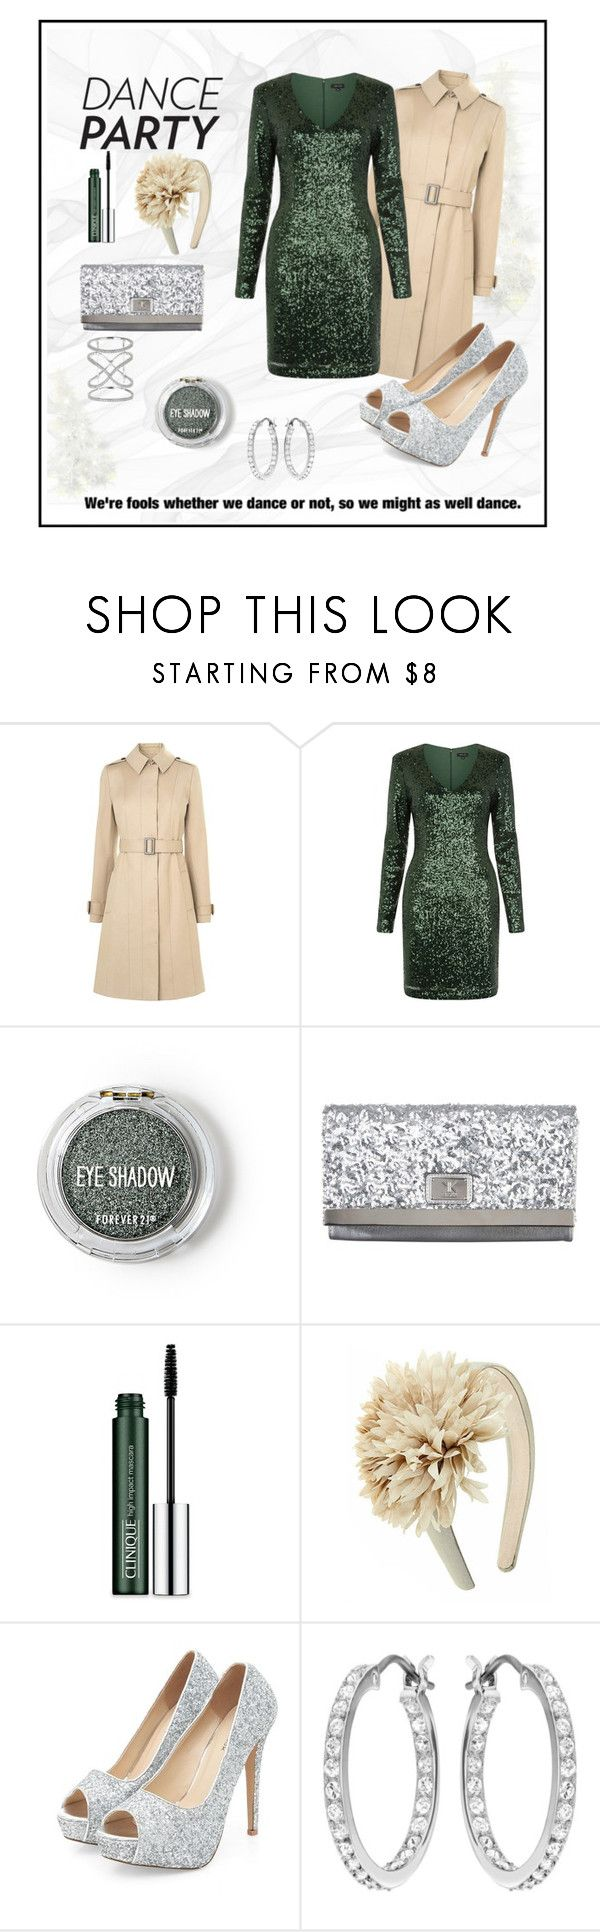 """***Might as Well Dance***"" by breeches ❤ liked on Polyvore featuring L.K.Bennett, Forever 21, Kardashian Kollection, Clinique, Swarovski and Gioelli"